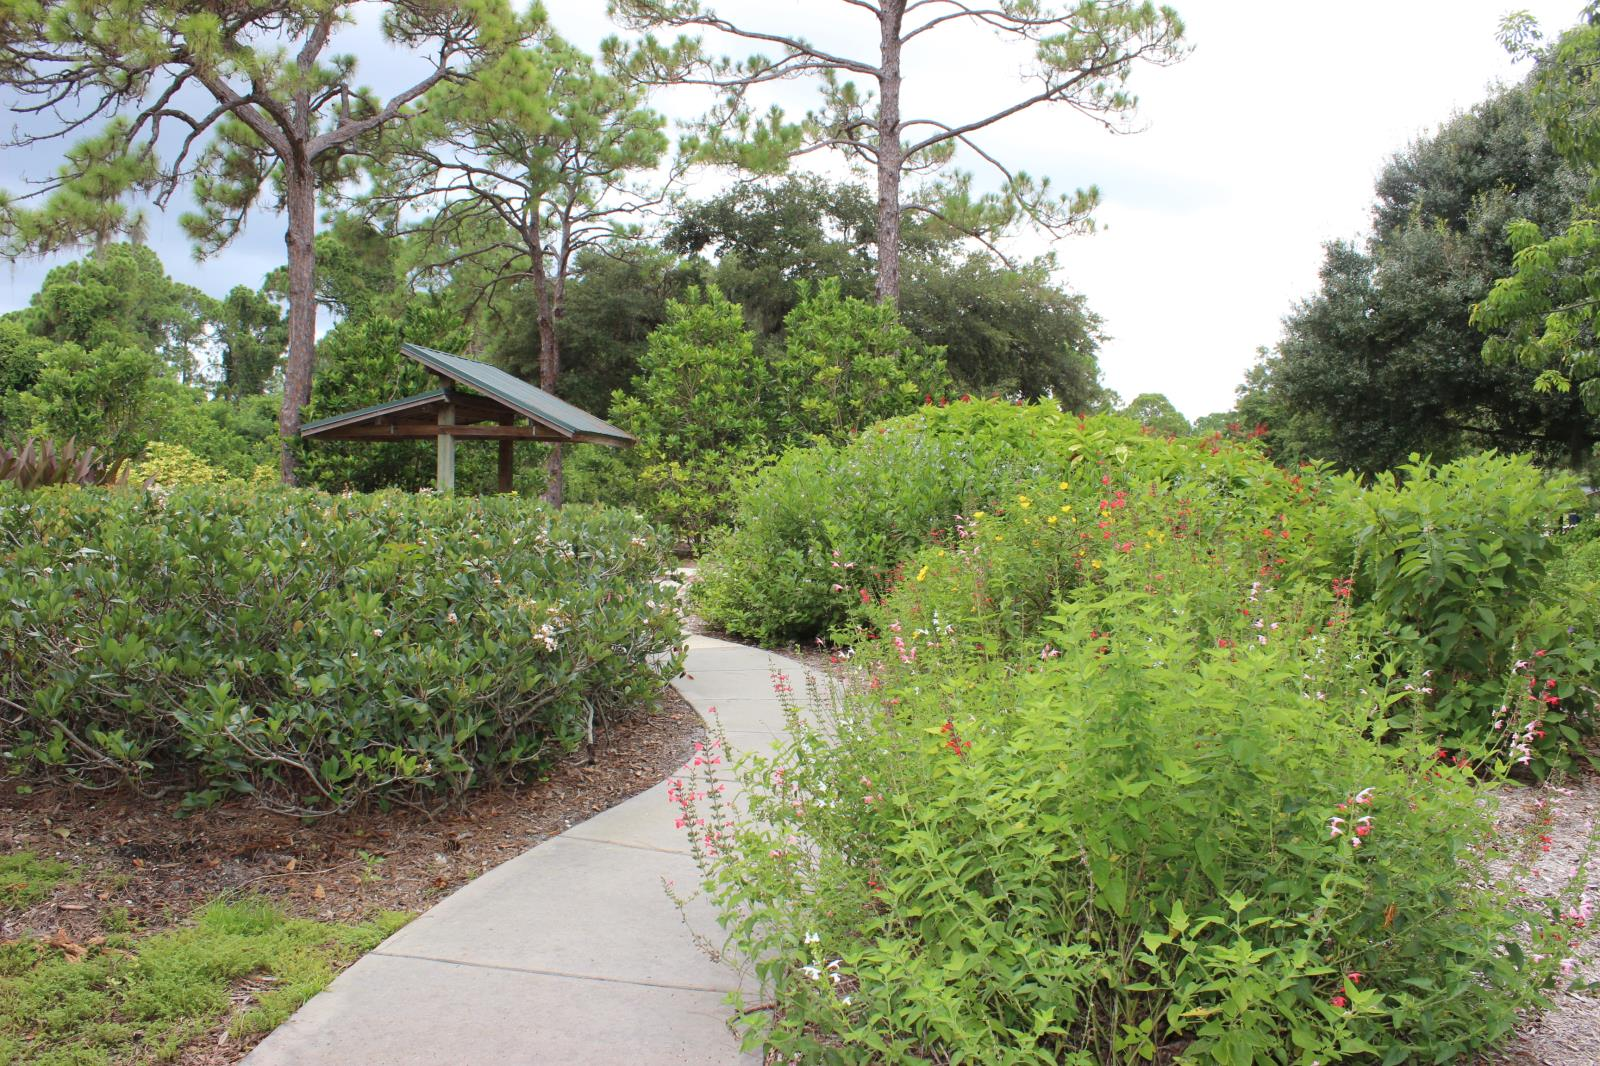 Pathway through ornamental plants